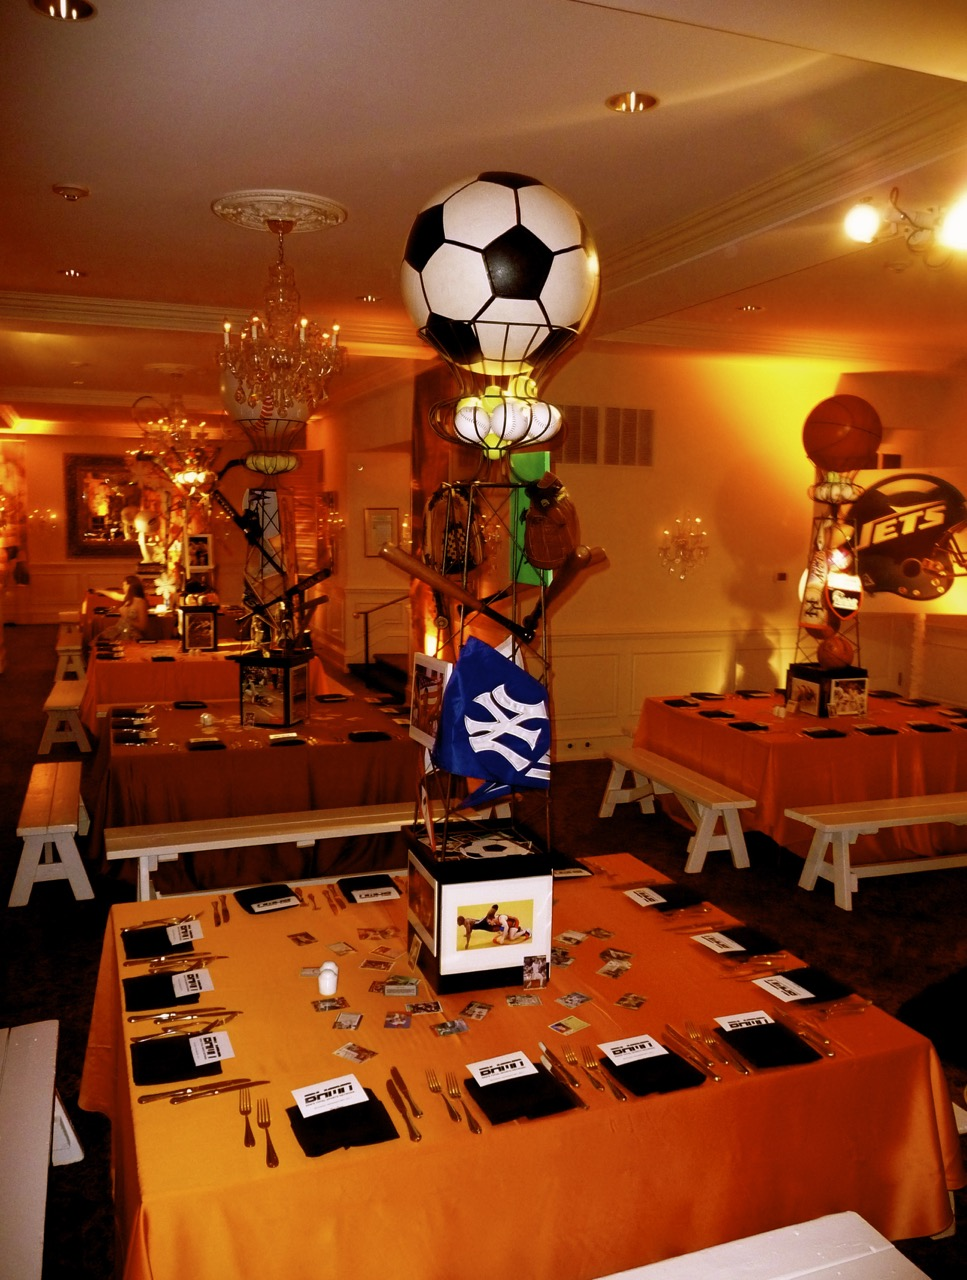 Sports theme gallery eggsotic events sports theme centerpieces decor and lighting by eggsotic events nj event design and decor rental junglespirit Gallery